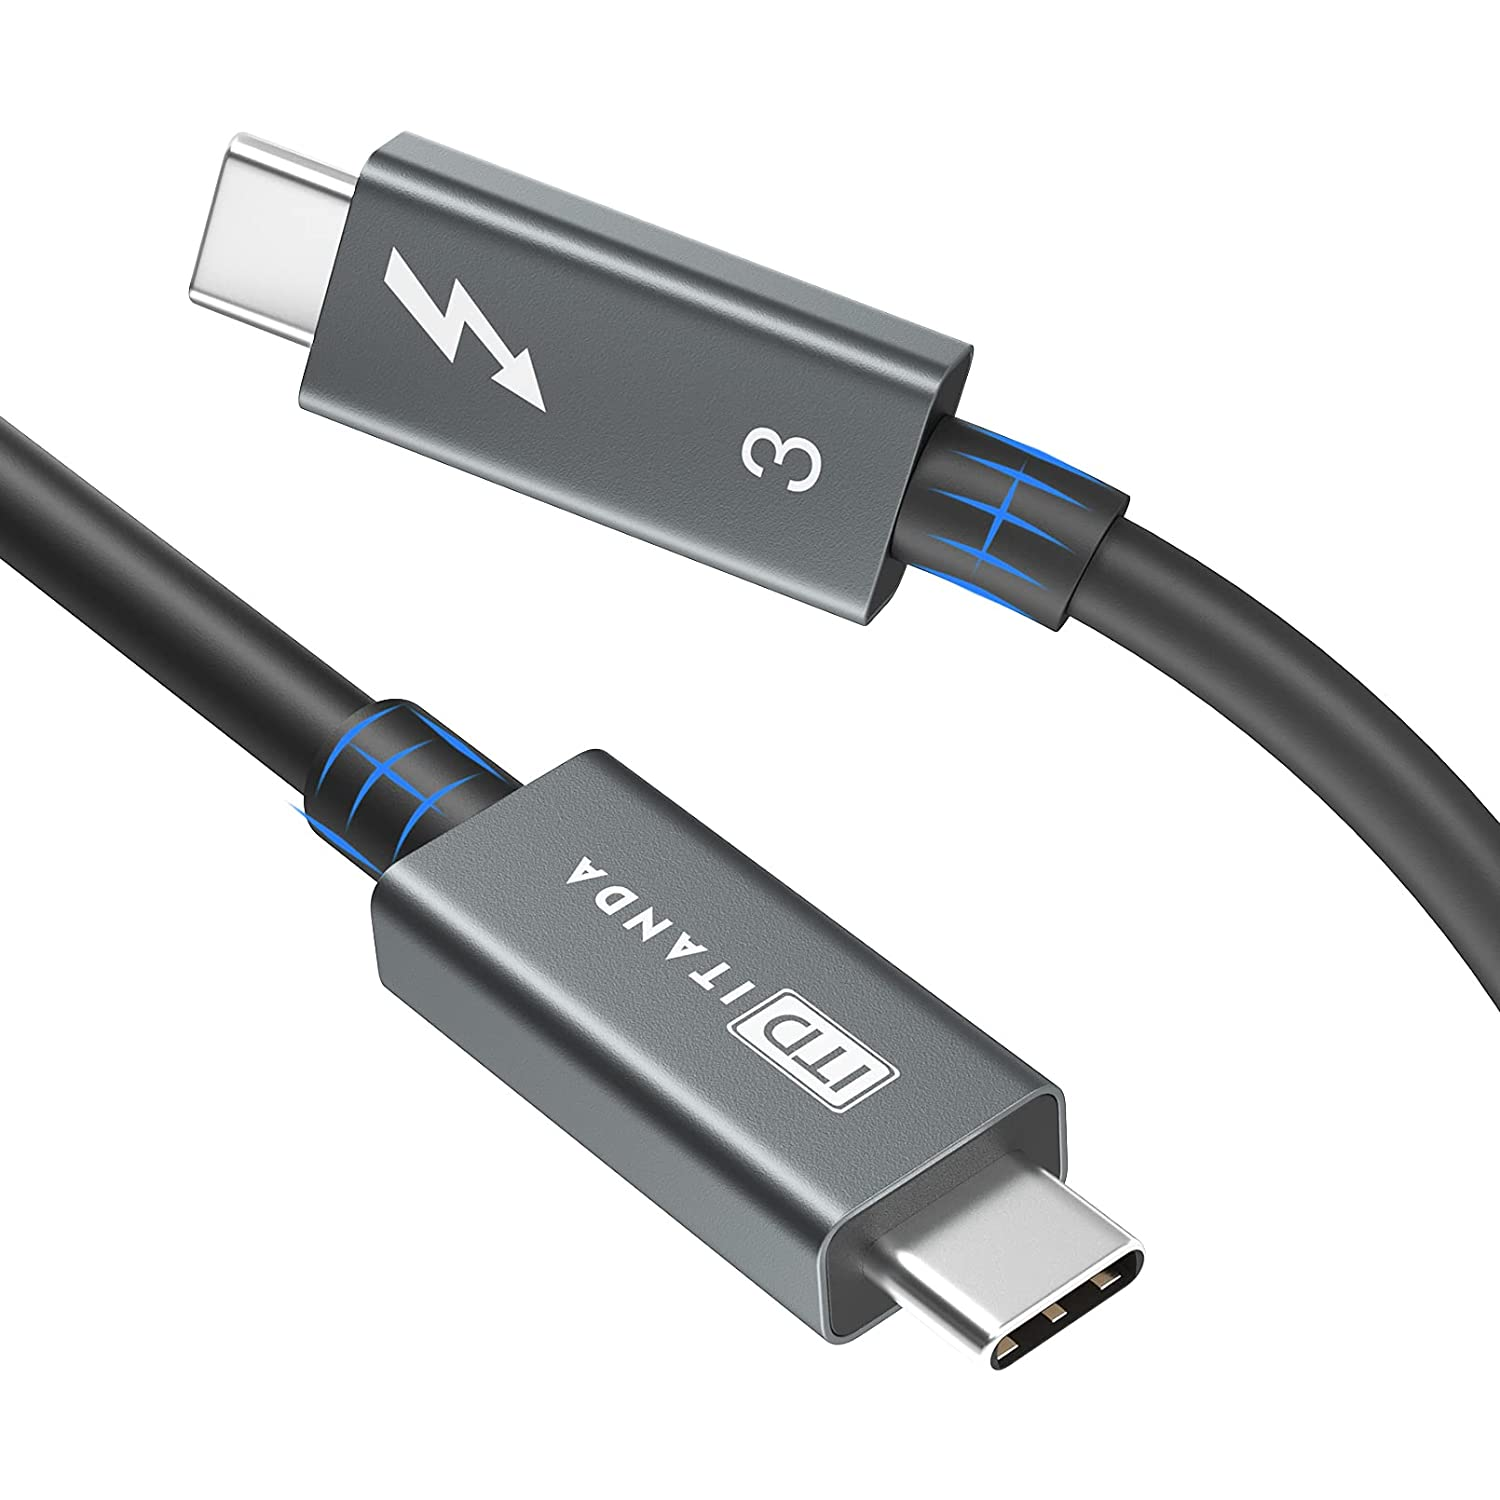 Thunderbolt 3 Cable 40 Gbps, ITD ITANDA USB C to USB C Cable with 100W Charging and 8K Video Display for Thunderbolt 3 Monitor/Hub/SSD/eGpu/USB-C Docking/Adapter/Pixel/iPad/Macbooks and More (2.3 ft)